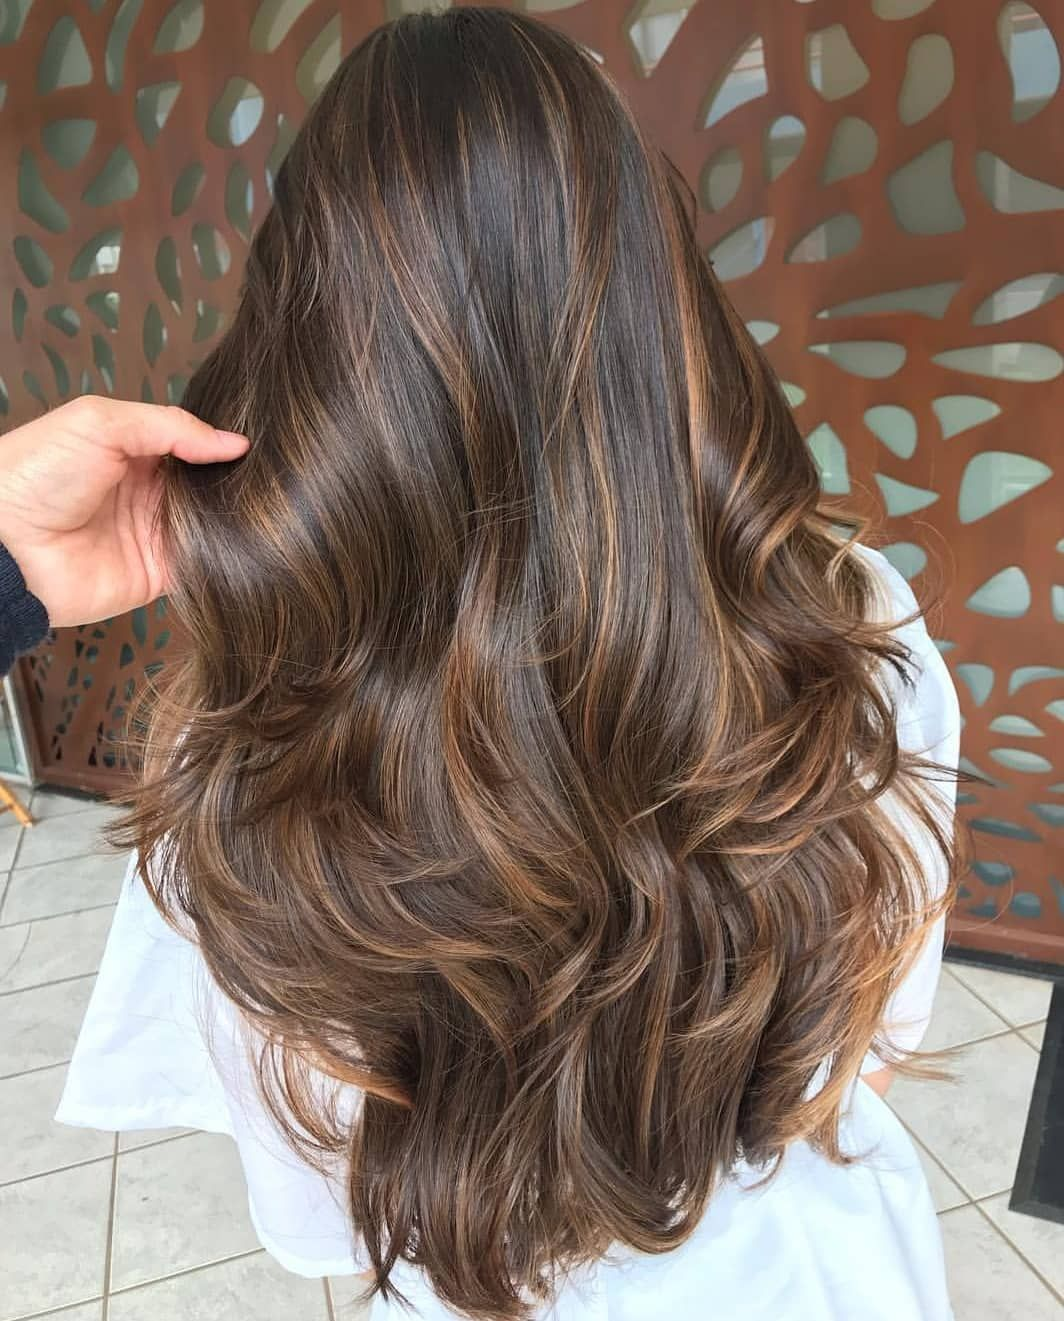 Long Hairstyles And Haircuts For Long Hair In 2019 Hair Styles Prom Hairstyles For Long Hair Haircuts For Long Hair